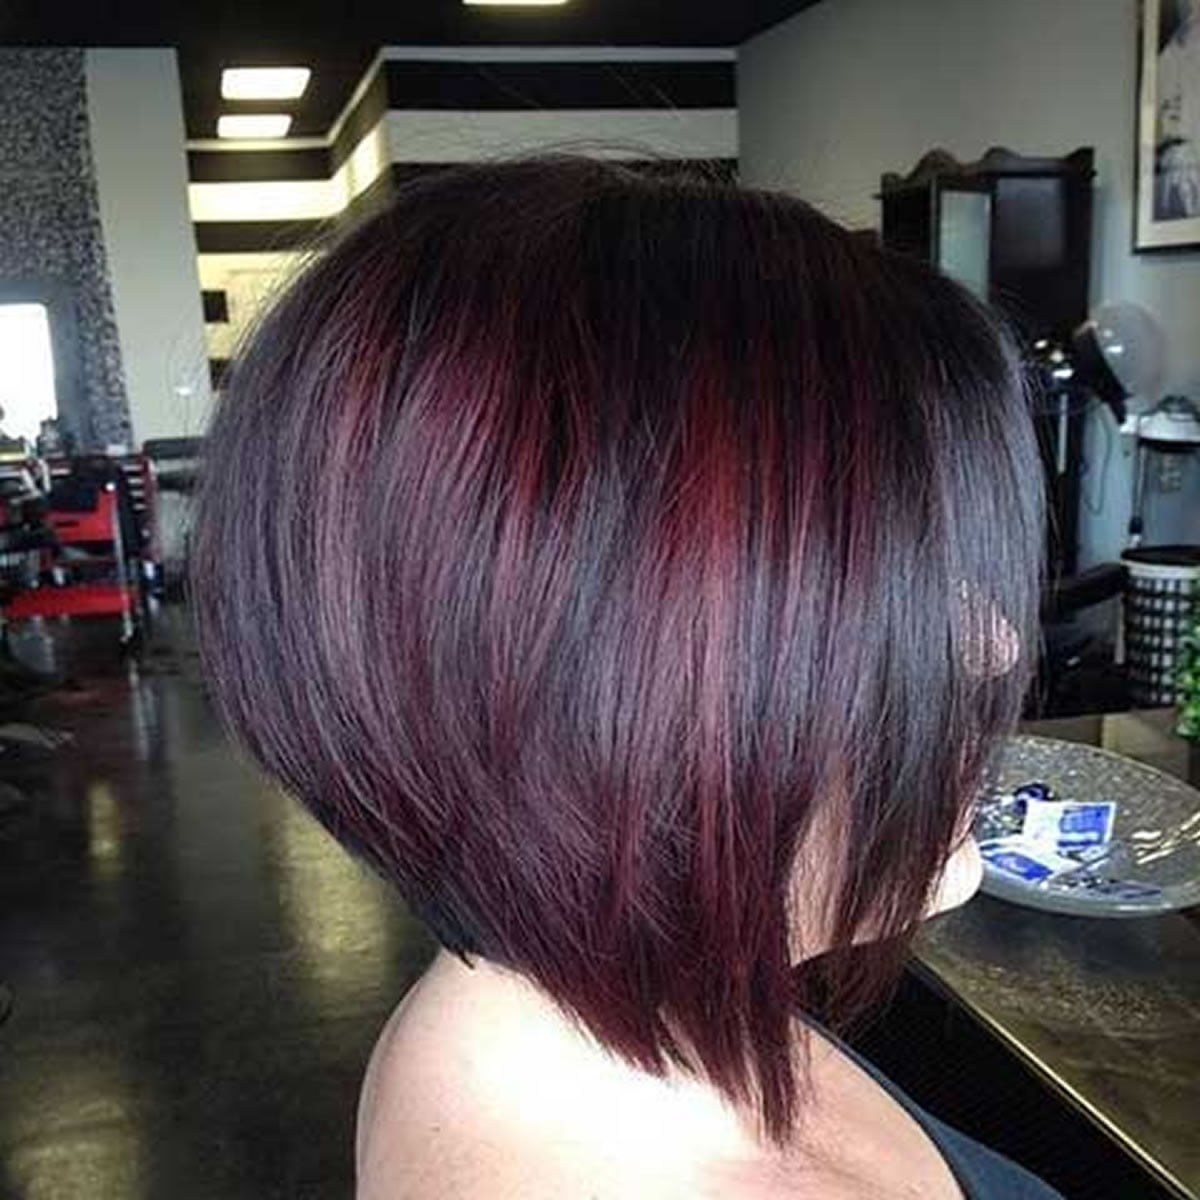 53 The Coolest Short Hairstyles And Hair Colors For Women